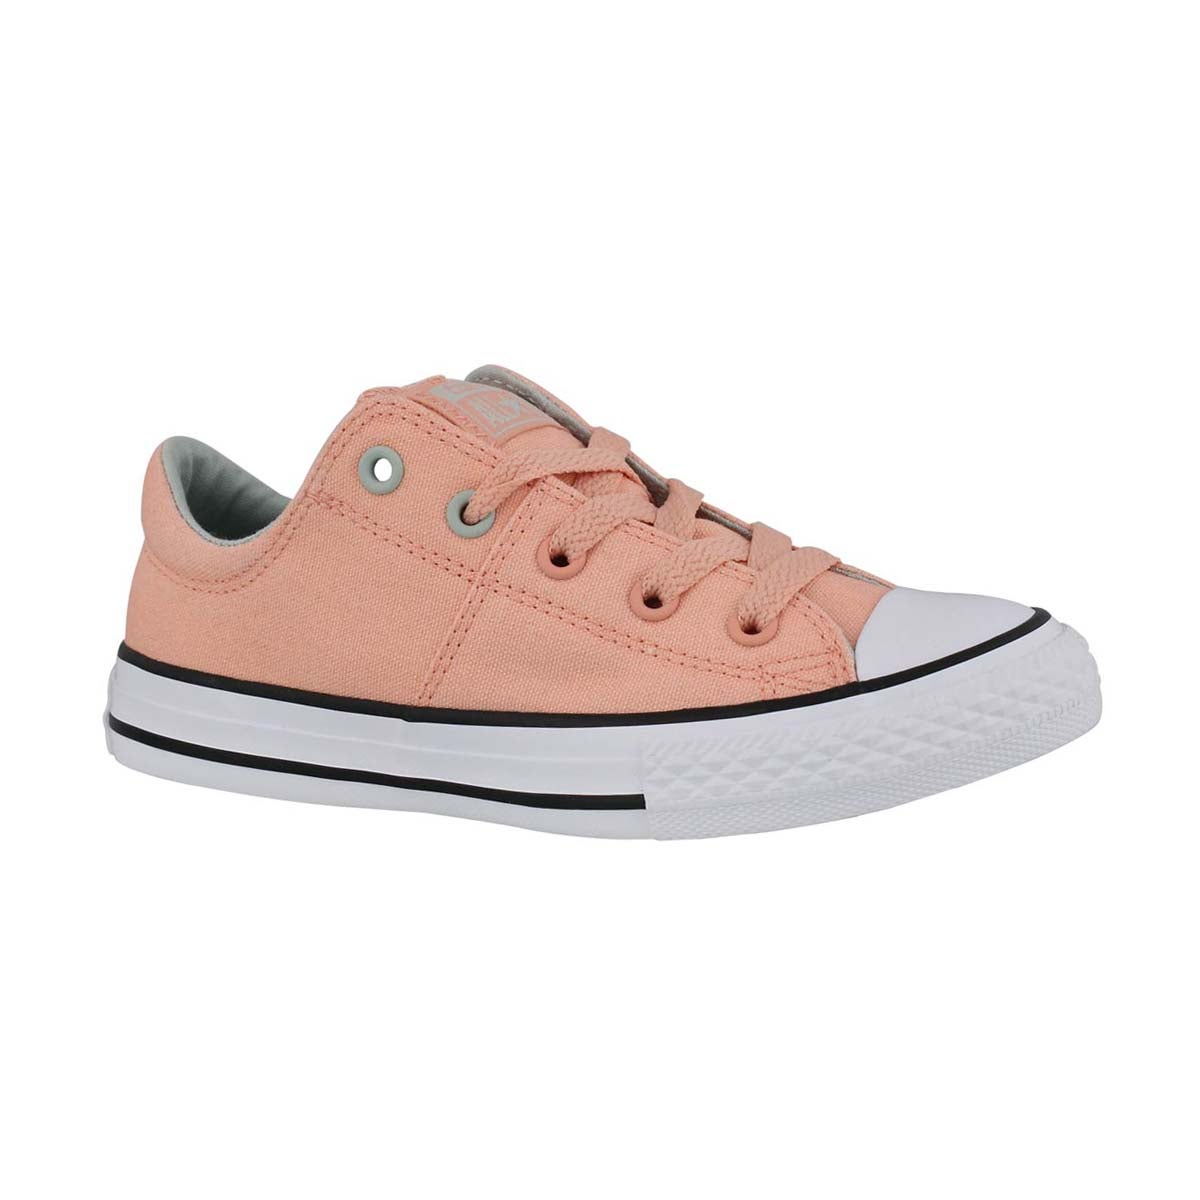 Grls CTAS Madison coral/bamboo sneaker